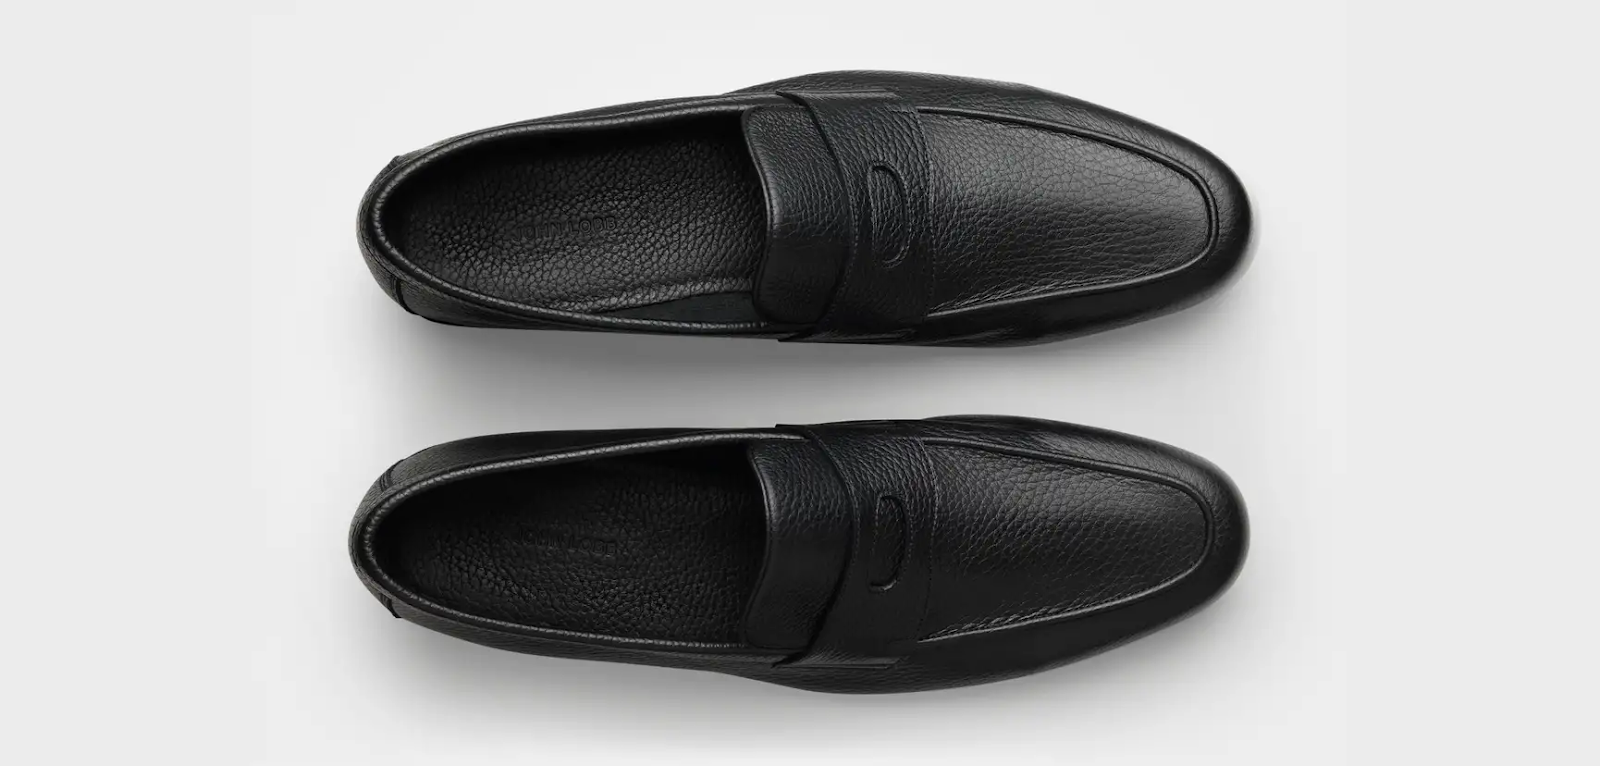 The Best Formal Shoes for Men to make a Style Statement